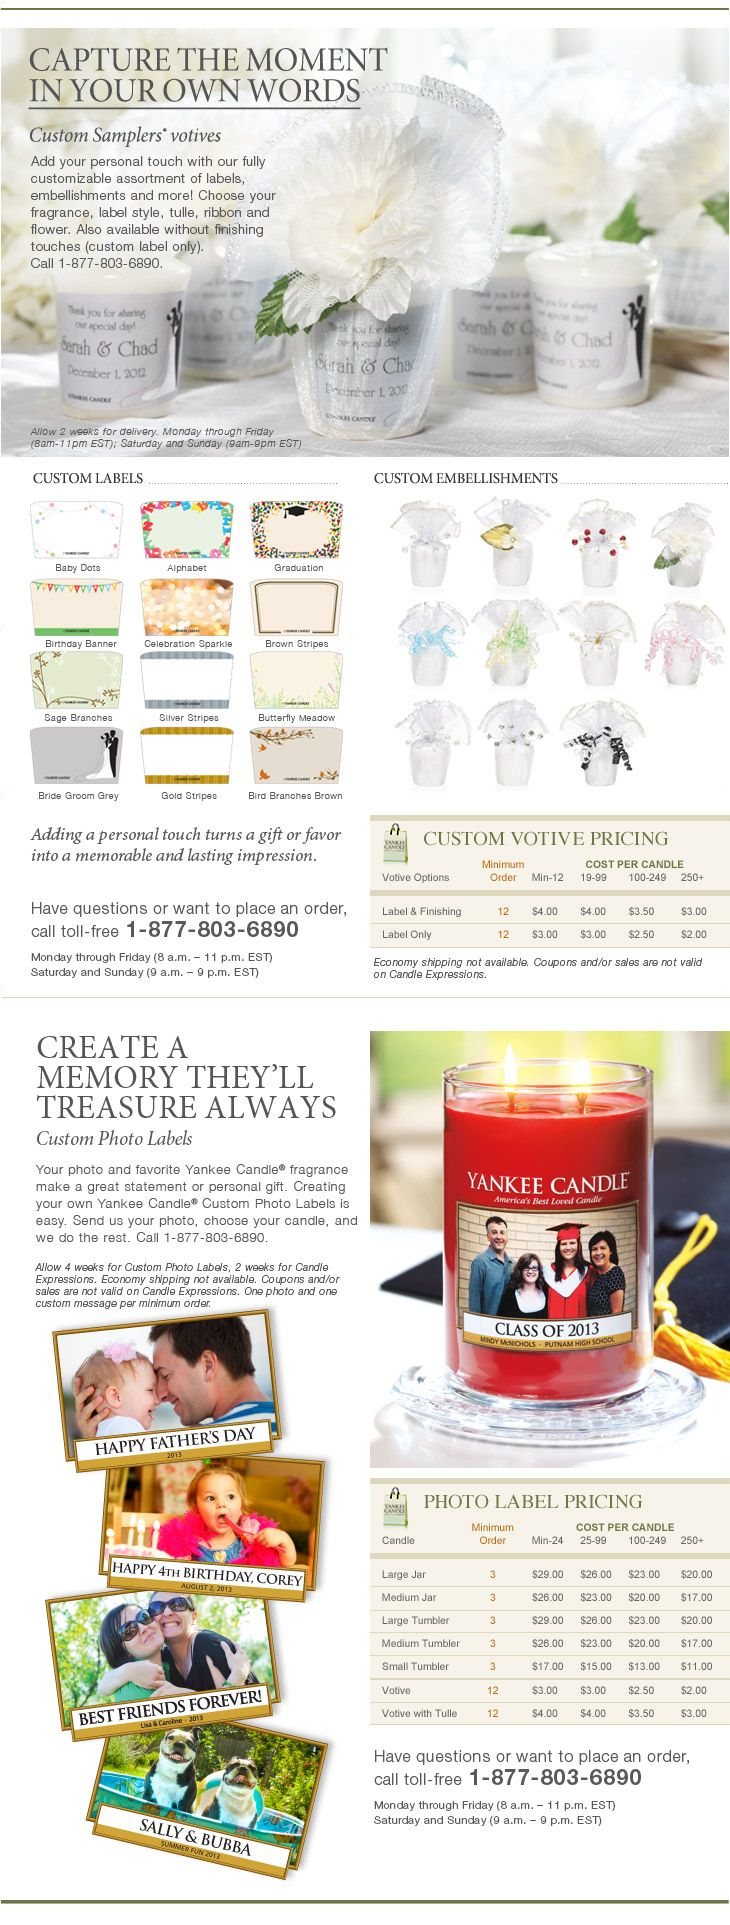 Order Customized Candles YankeeCandle.com | The preparation ...